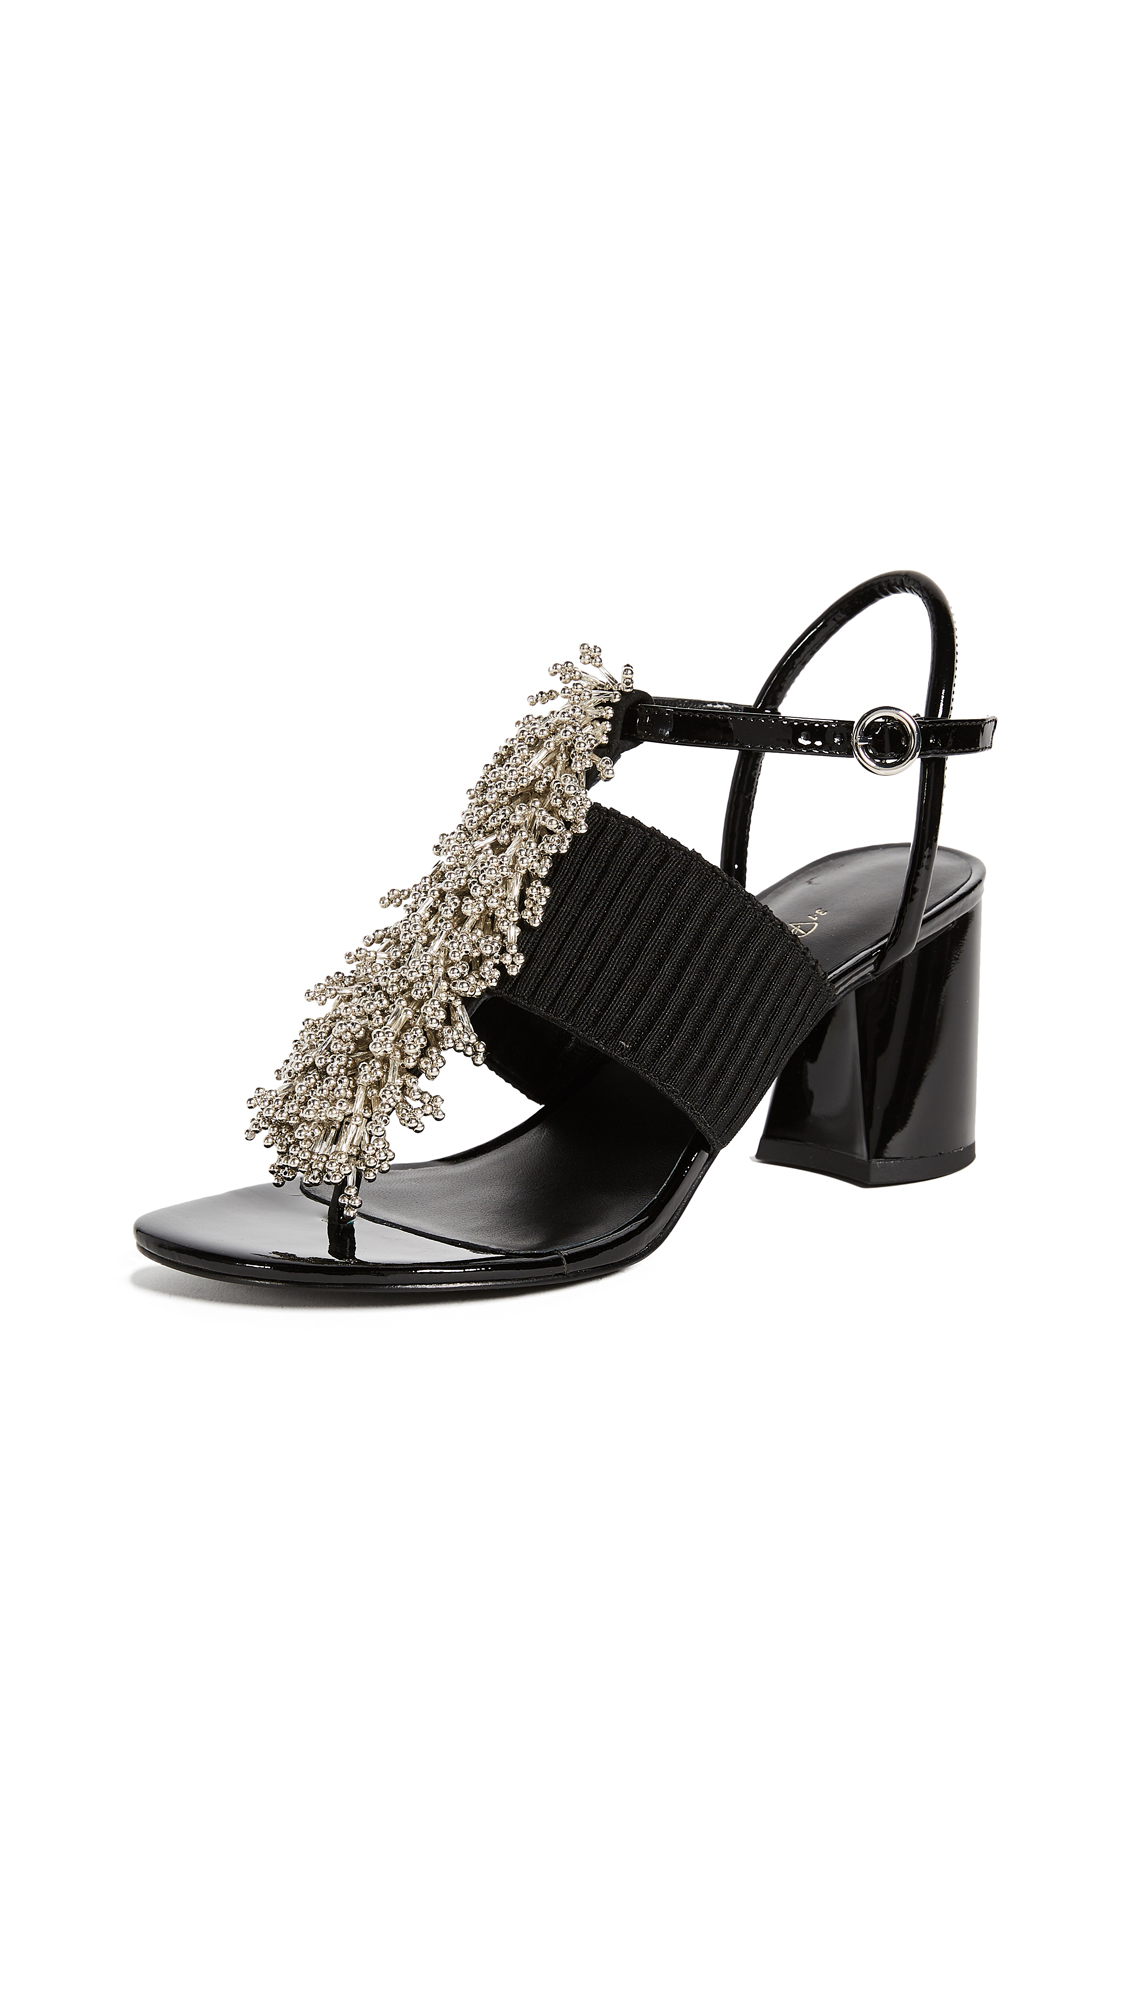 3.1 Phillip Lim Drum Beaded Sandals - Black